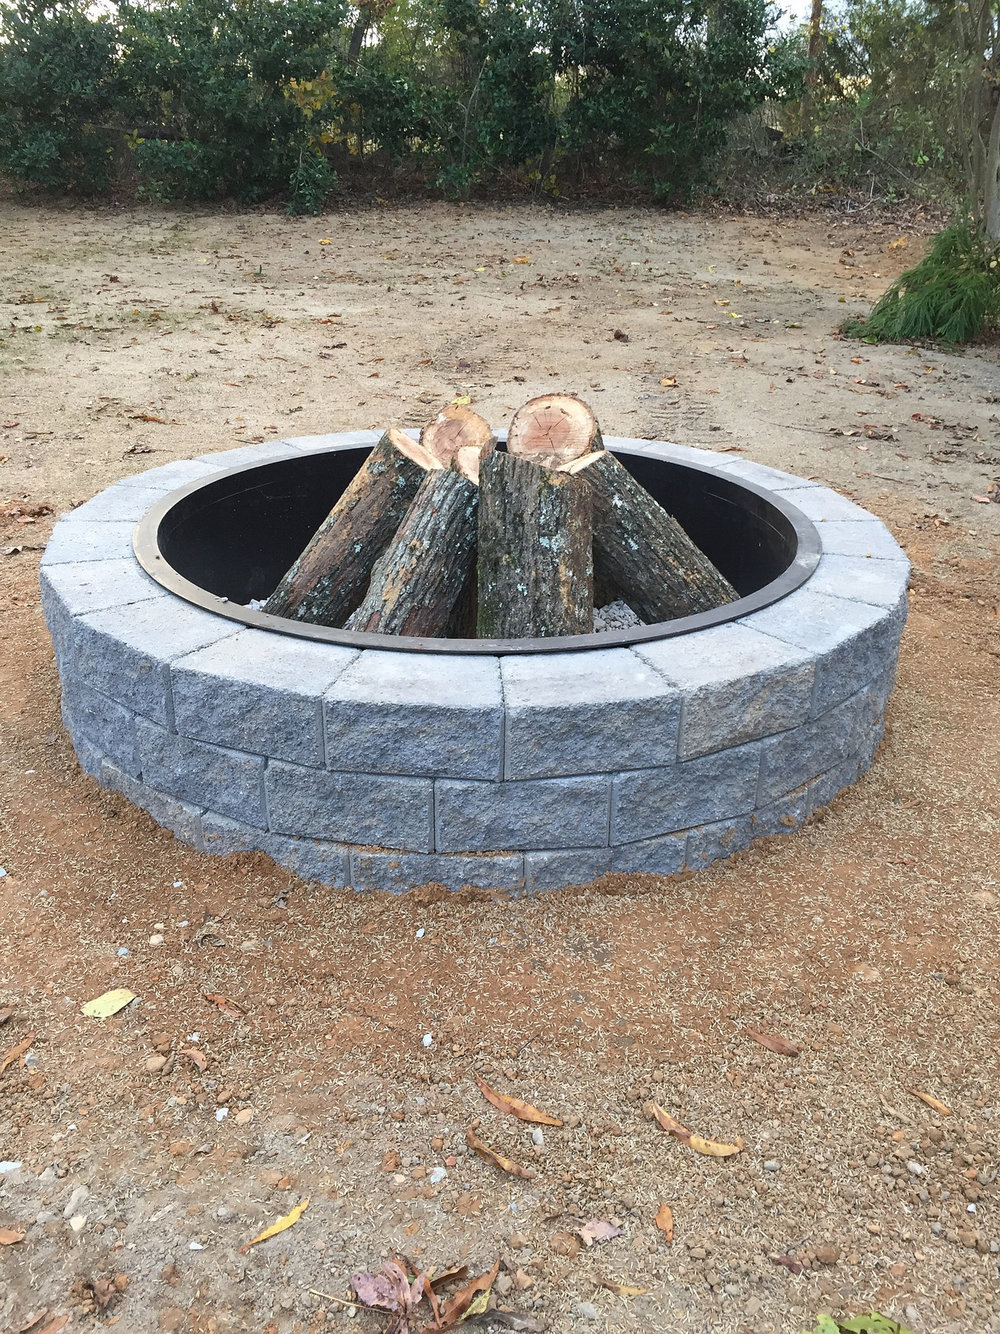 New fire pit.